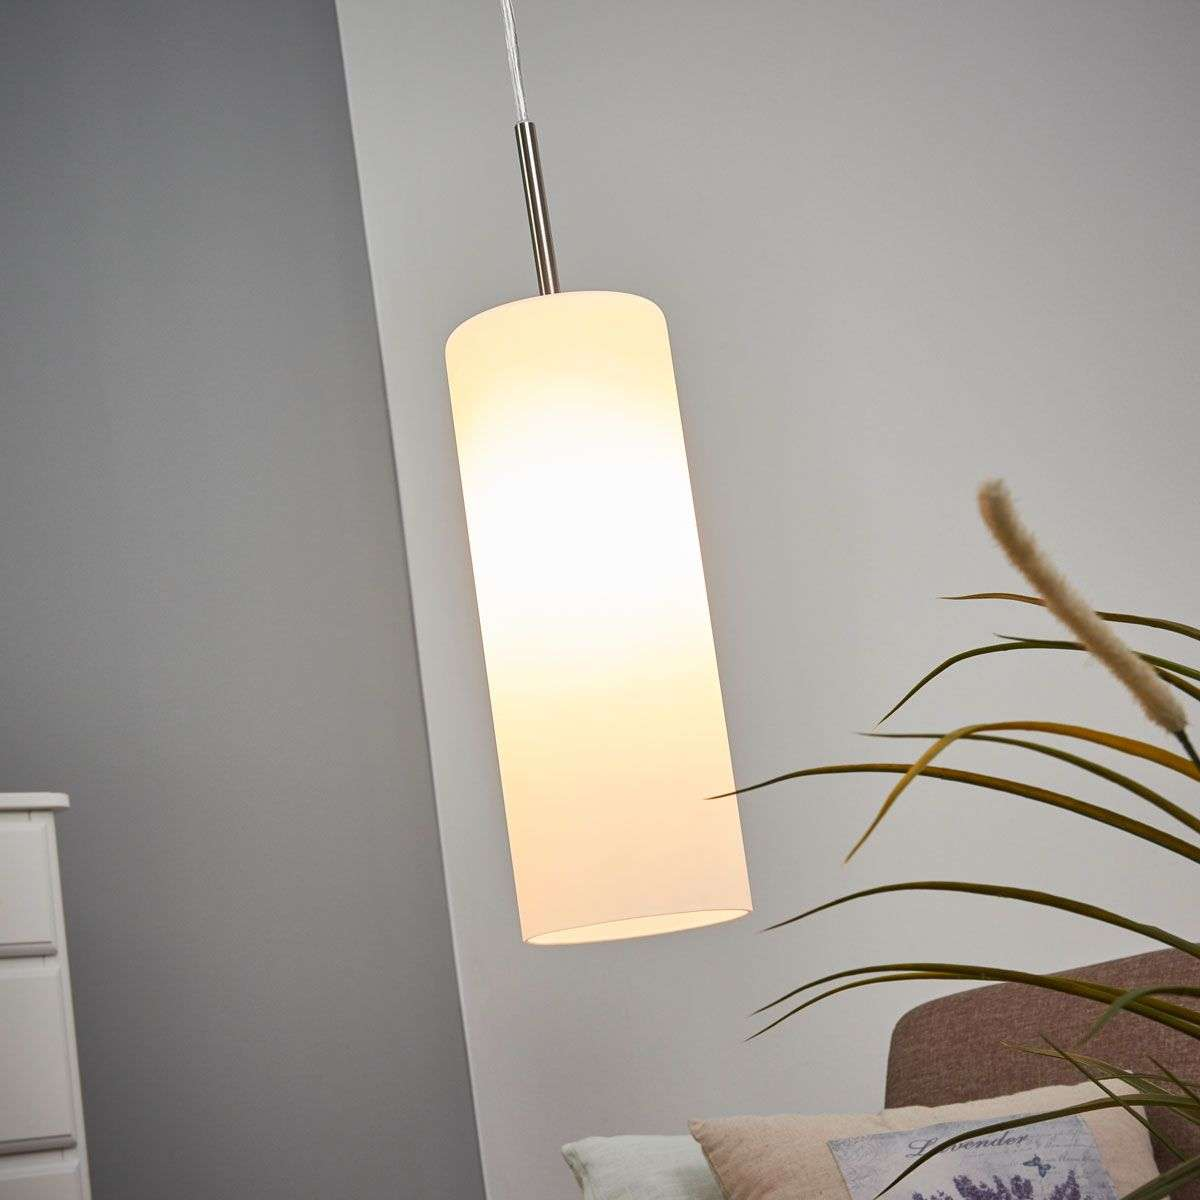 Decoratieve hanglamp Troy wit-3031190-31